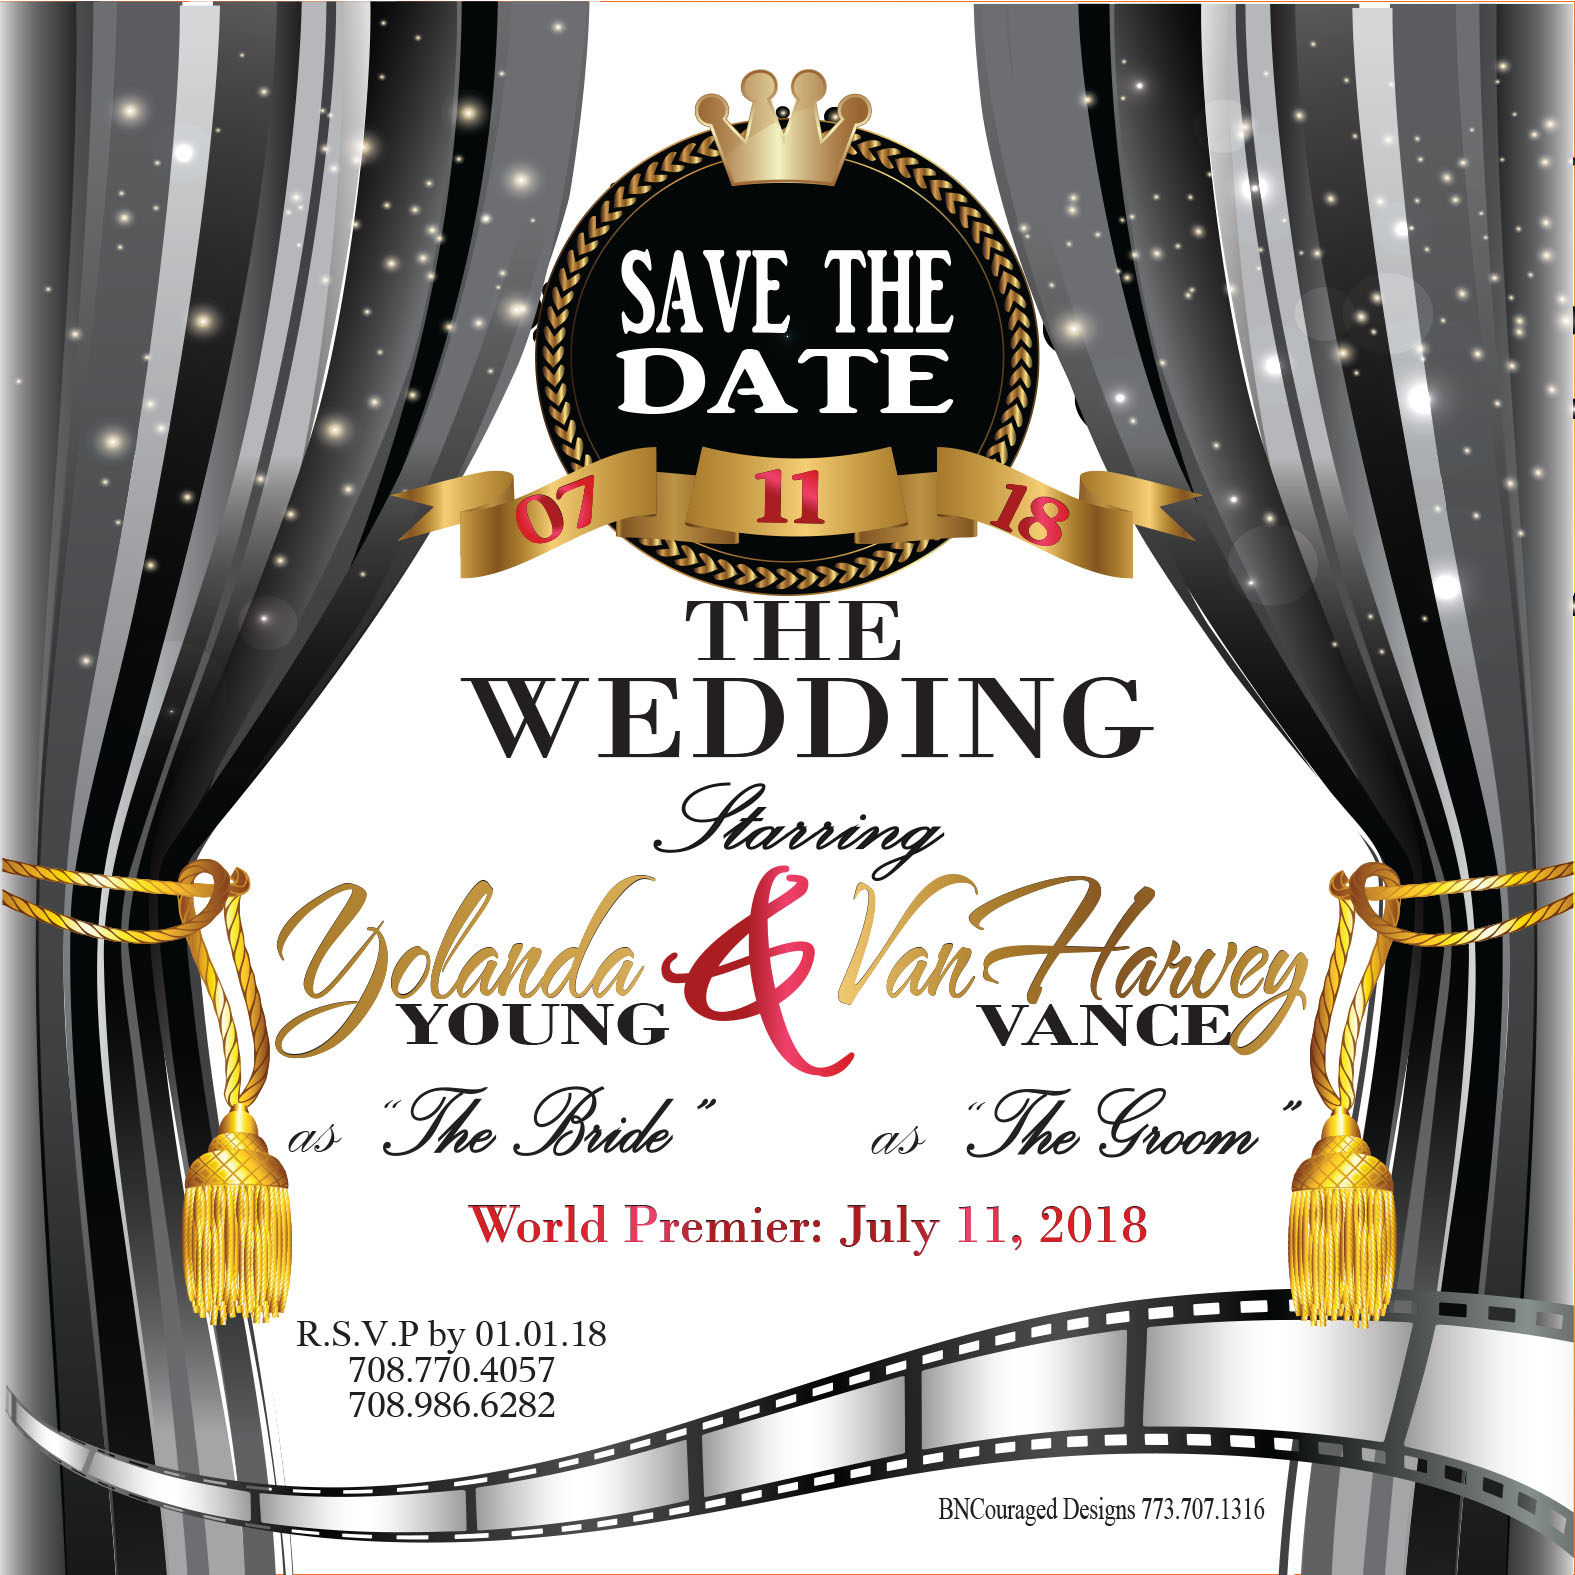 yolanda younge weddinginvite